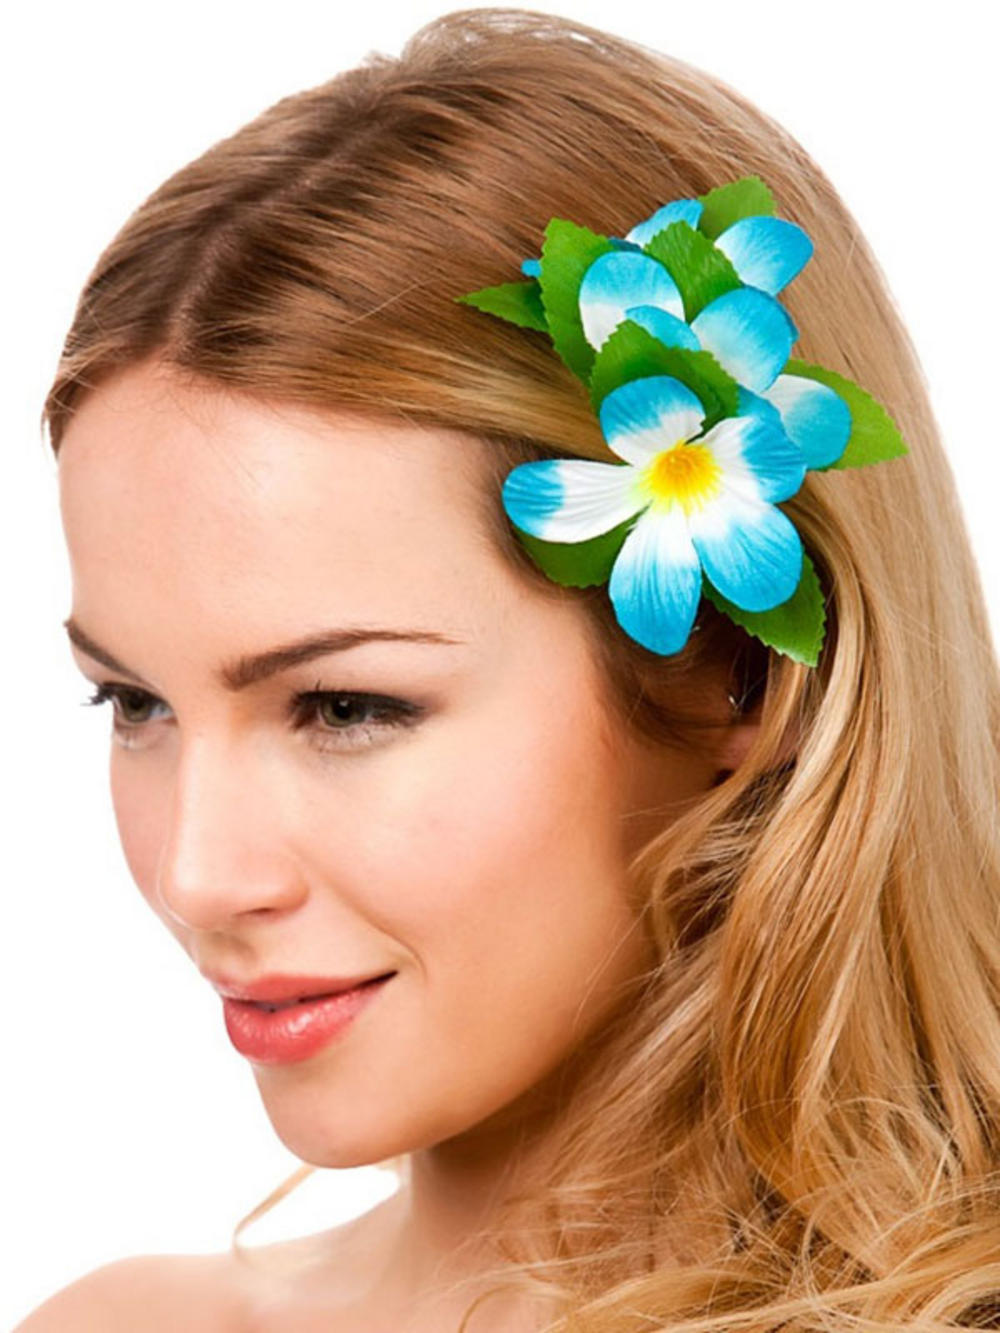 7 things you need to know about luau hairstyles today luau best 25 luau hair ideas on pinterest pineapple carving hawaiian izmirmasajfo